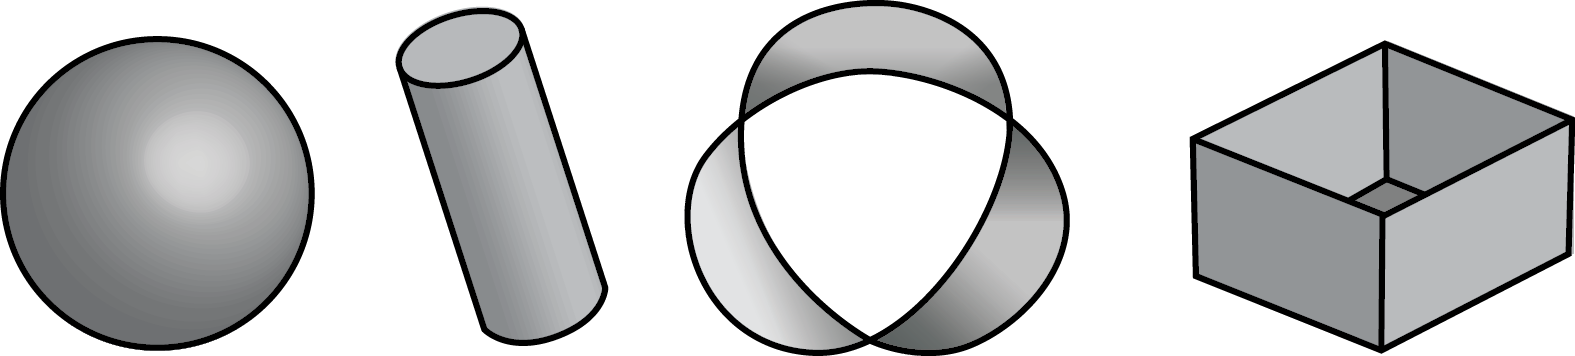 a sphere, a cylinder, a strip with 3 twists joined end-to-end, and an open-top box.